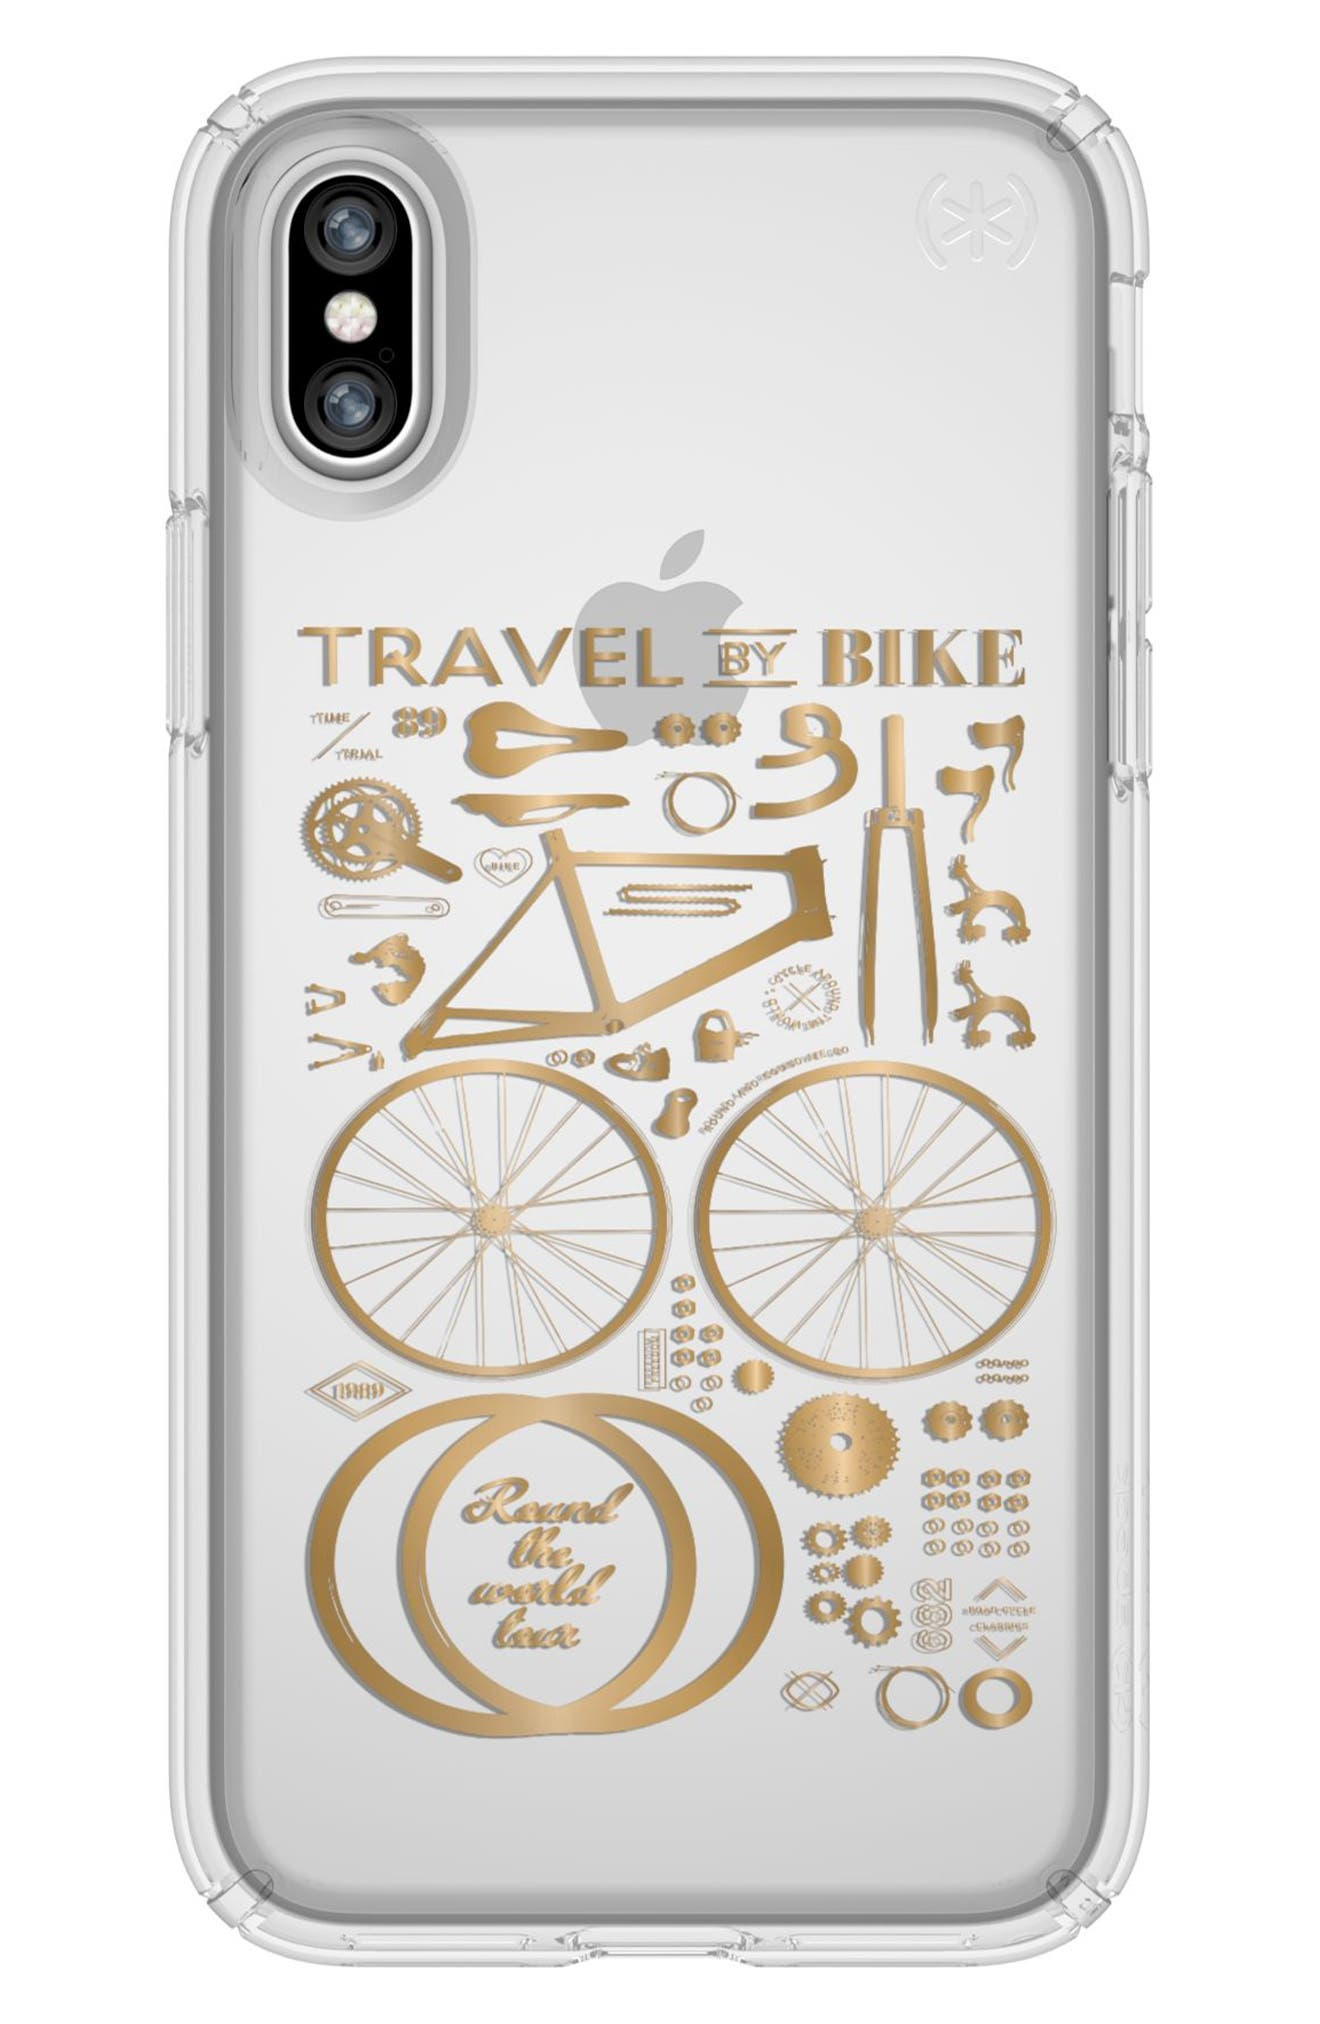 Metallic City Bike Transparent iPhone X Case,                         Main,                         color, City Bike Metallic Gold/ Clear